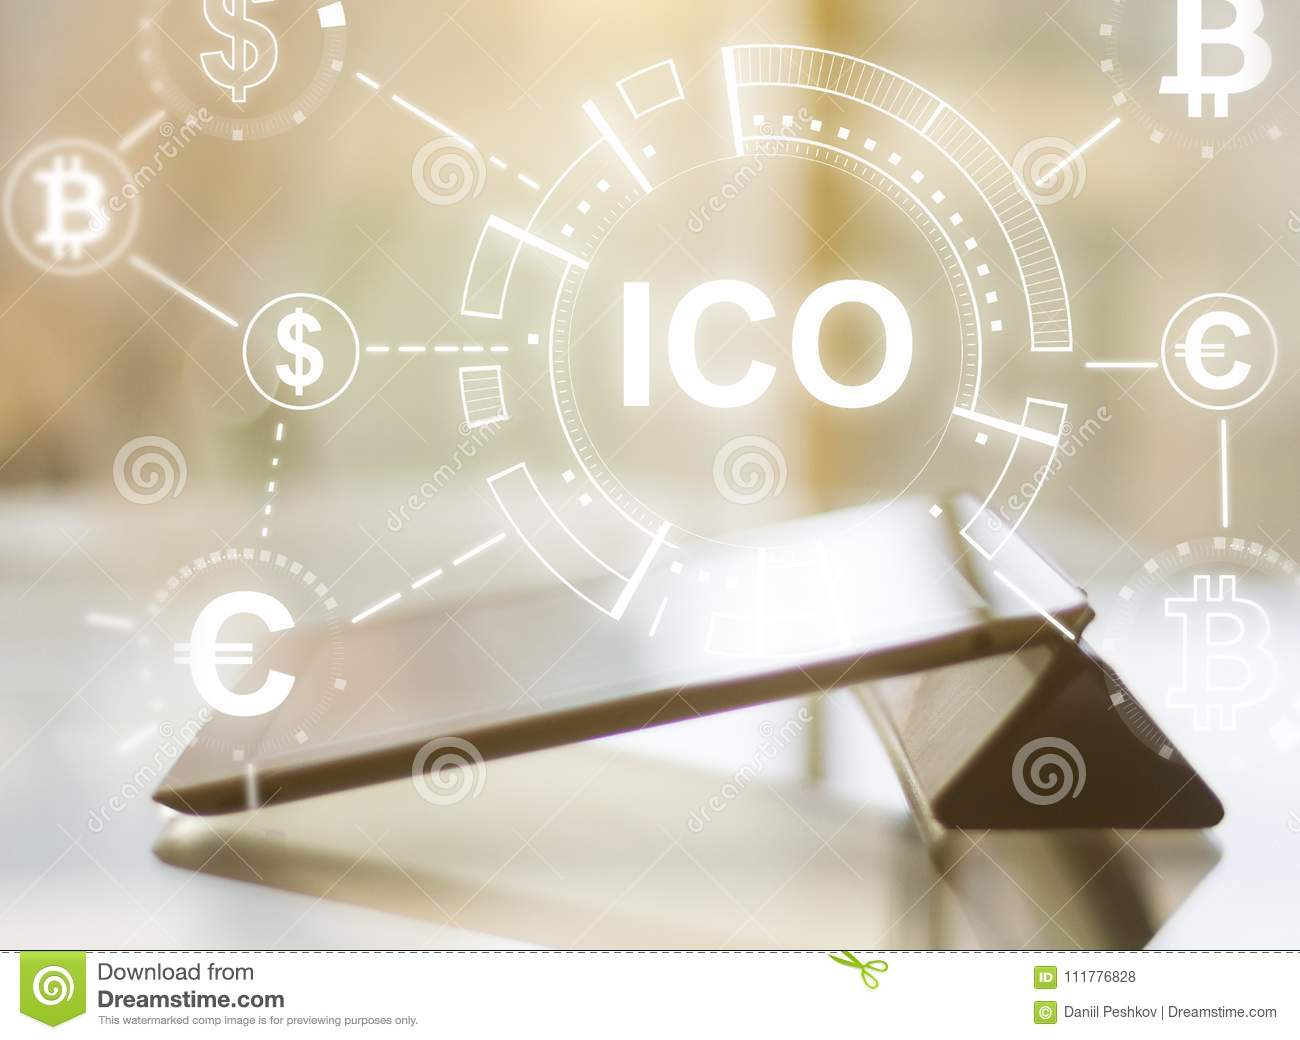 Tablet with ICO hologram